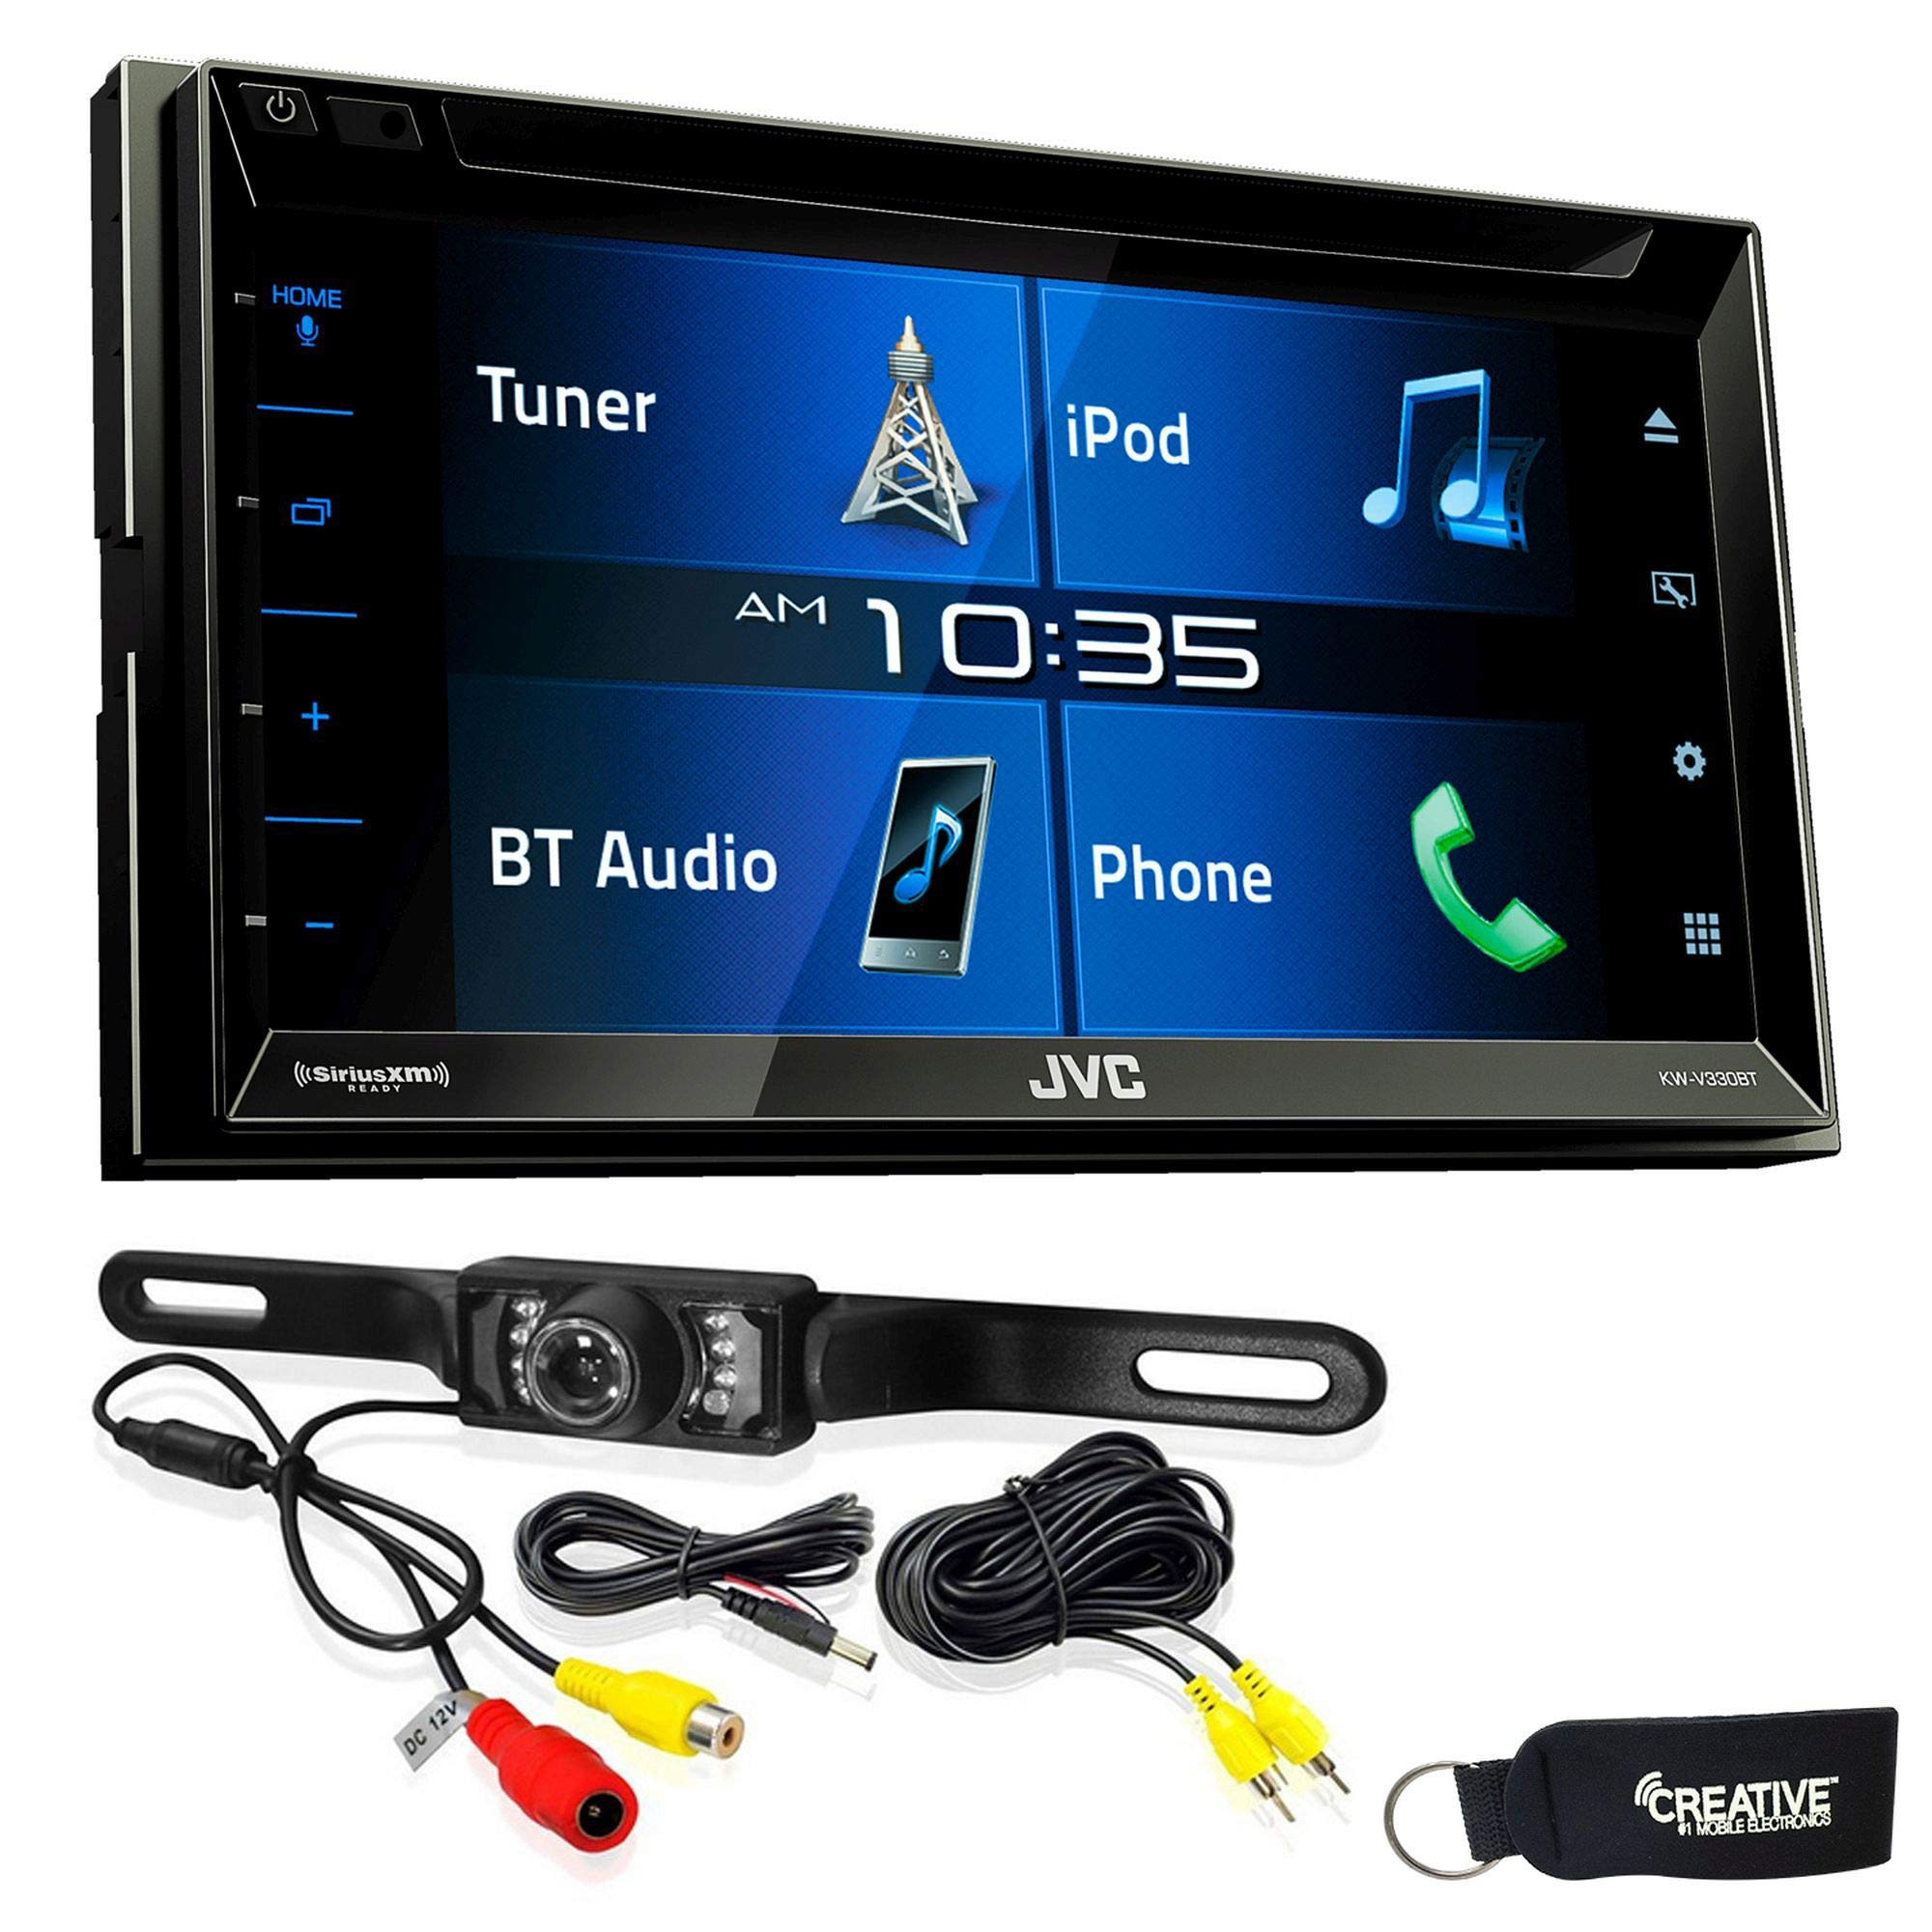 JVC KW-V330BT 6.8'' Double DIN Bluetooth in-Dash DVD/CD/AM/FM/Digital Media Car Stereo with Rear View Camera